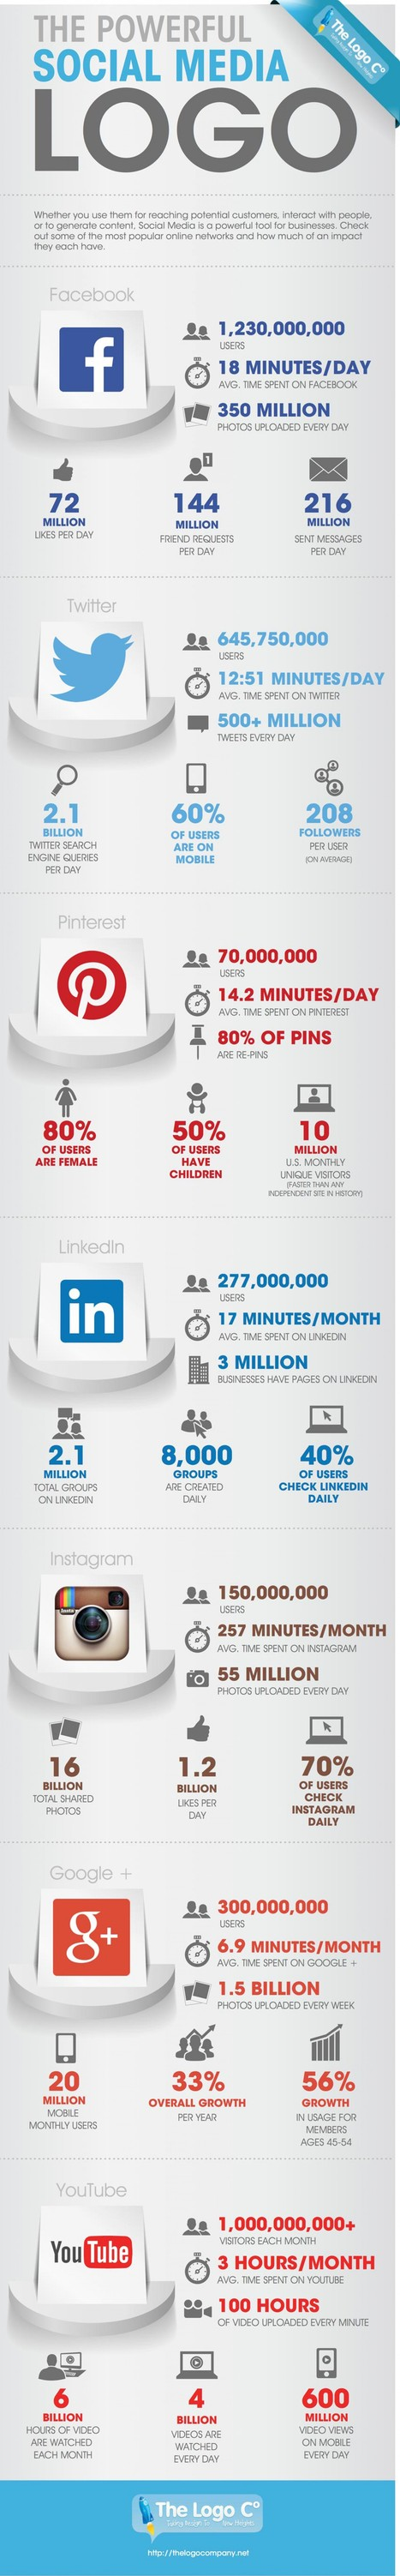 The powerful social media logo [Infographic] | Time to Learn | Scoop.it